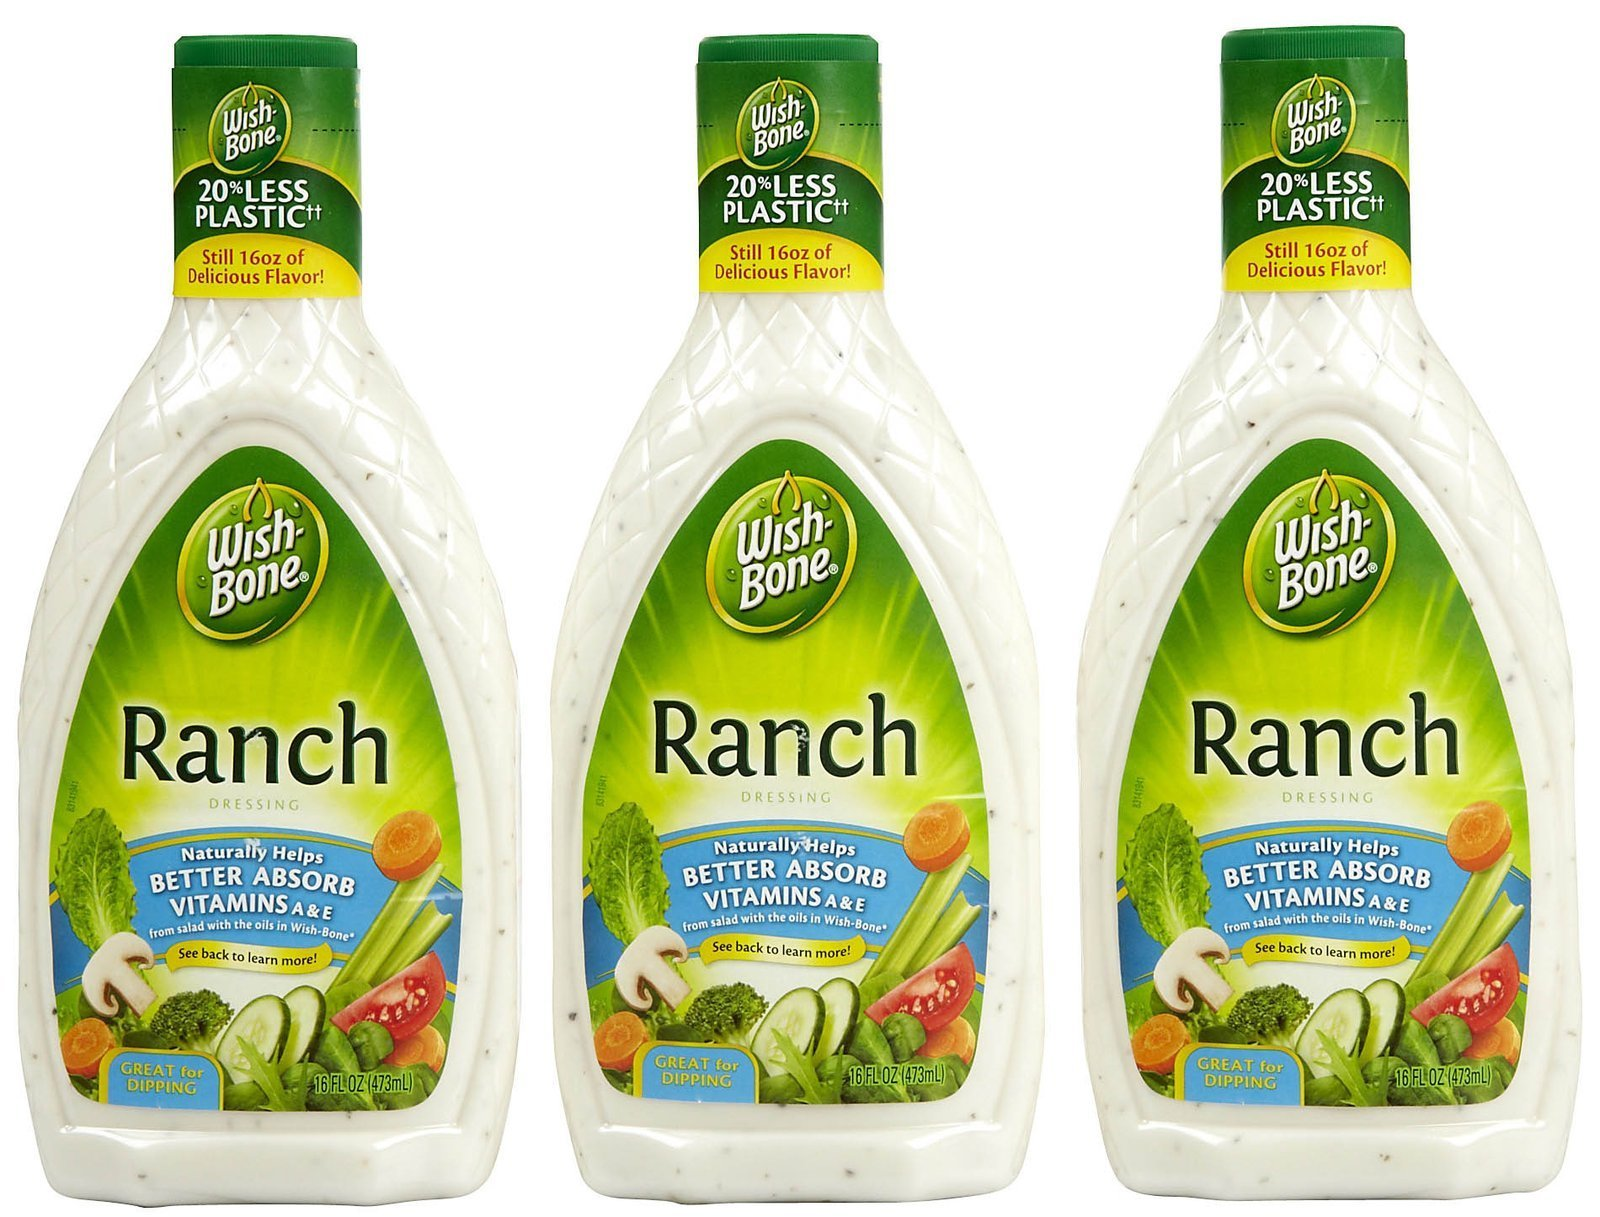 Wishbone Ranch Dressing Wish-bone Ranch Dressing